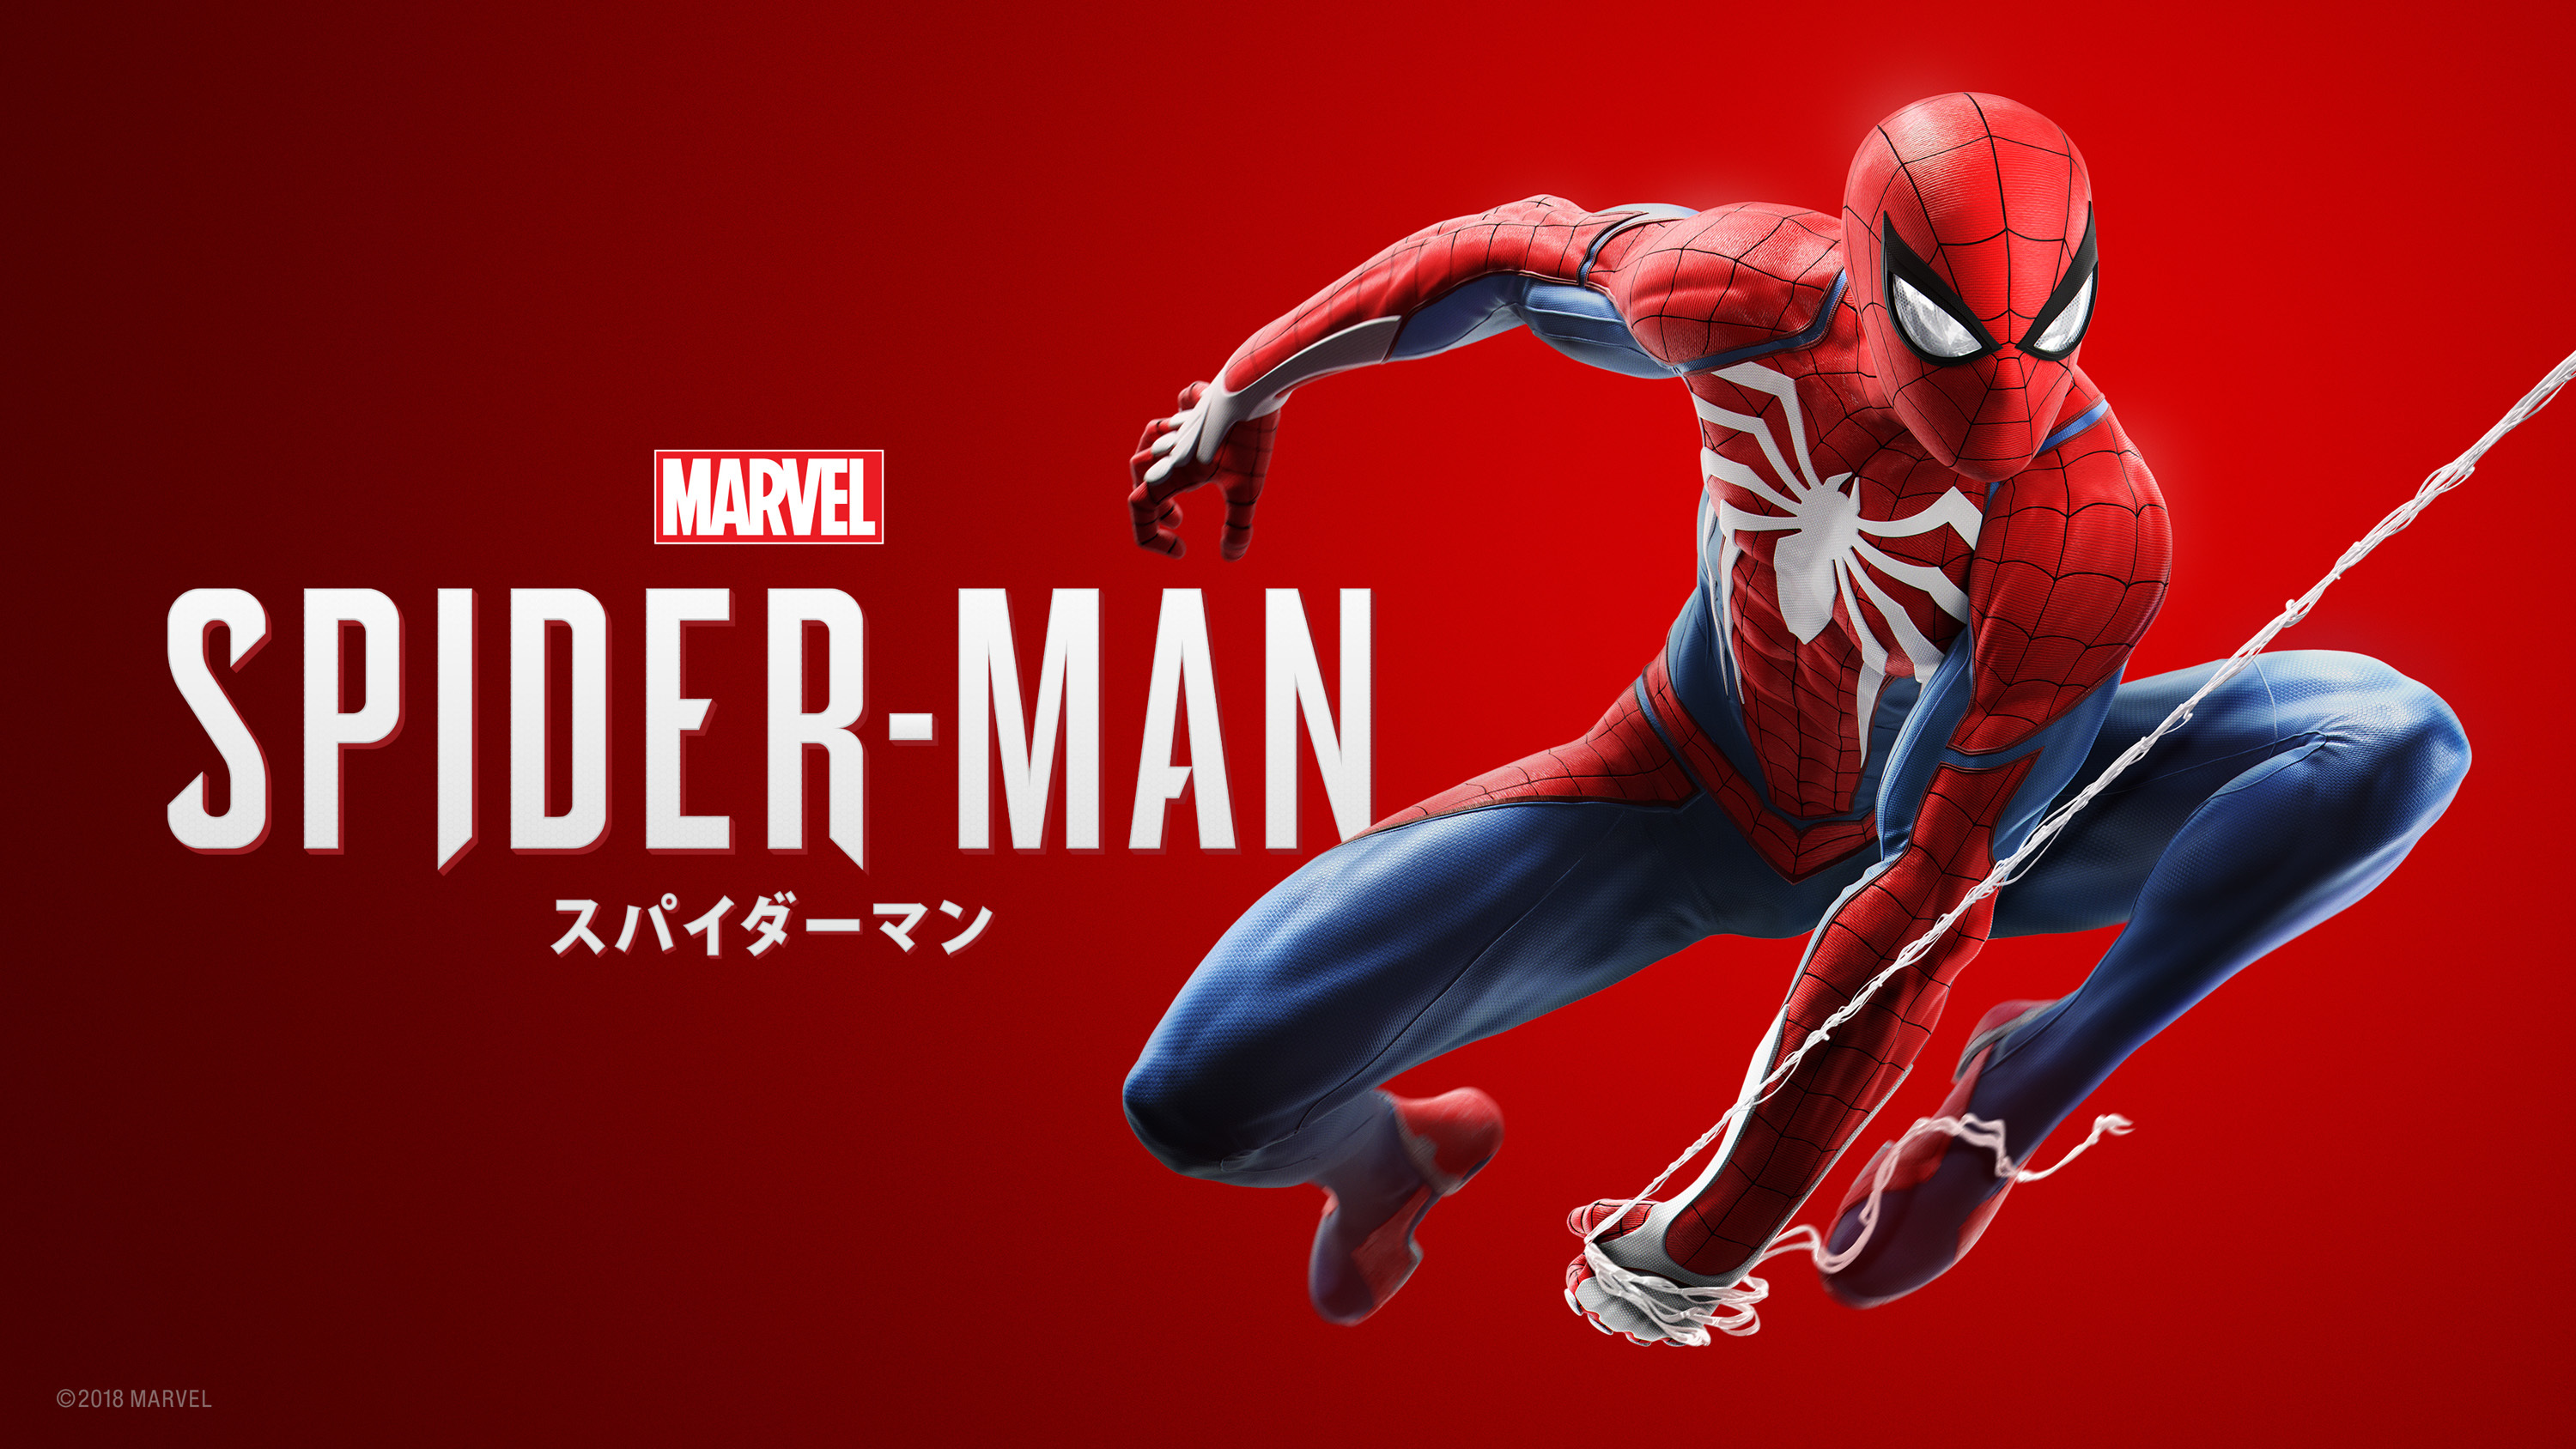 (c)2018 MARVEL (c)Sony Interactive Entertainment LLC. Developed by Insomniac Games, Inc.